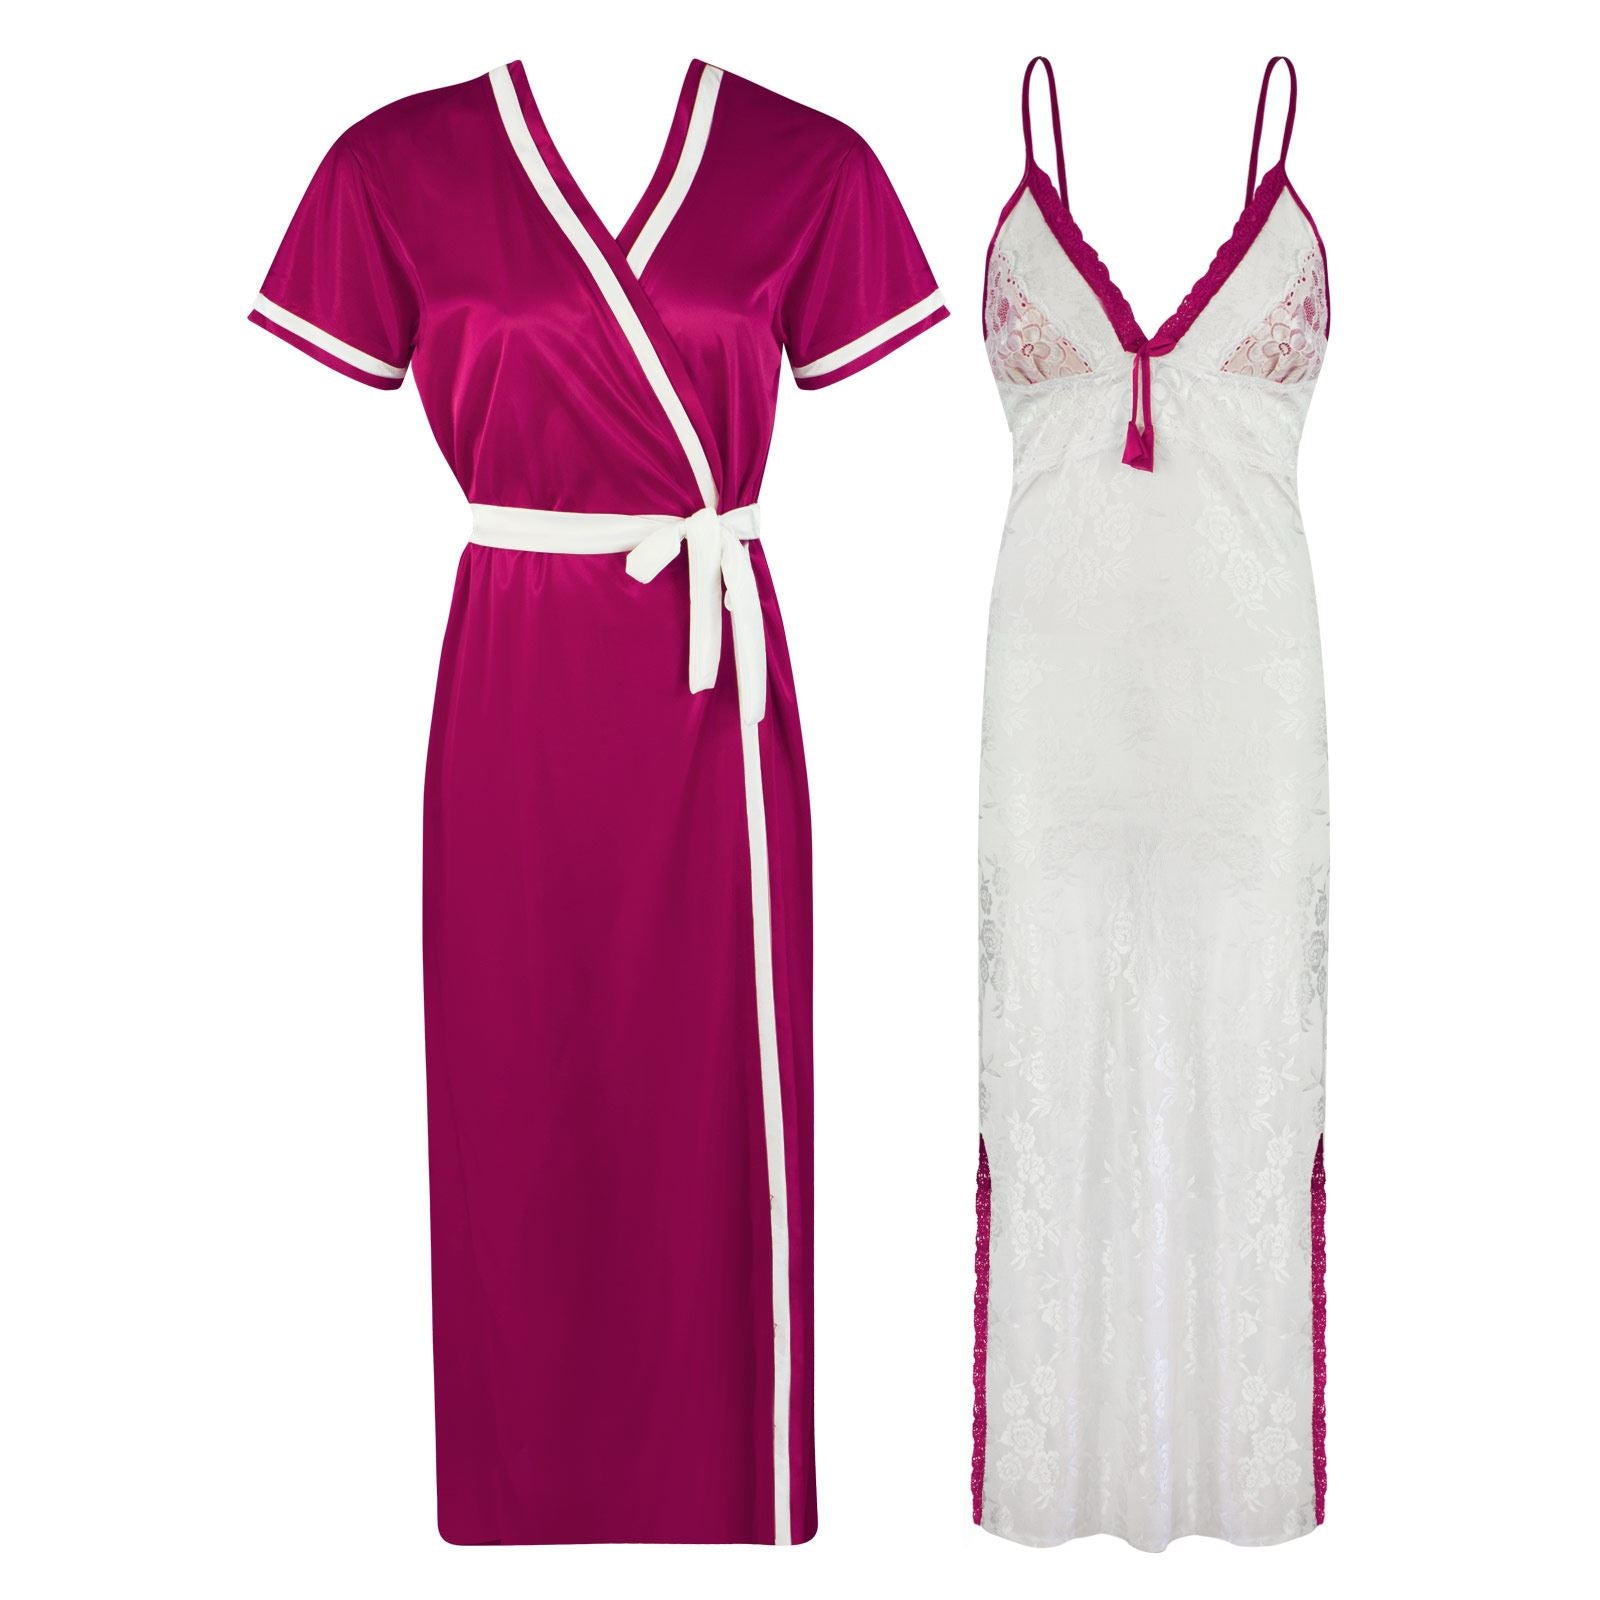 Sexy Lace Satin White Nightdress With Robe [colour]- Hautie UK, #Nightfashion | #Underfashion ONE, FREE SIZE S M L XL  CERISE